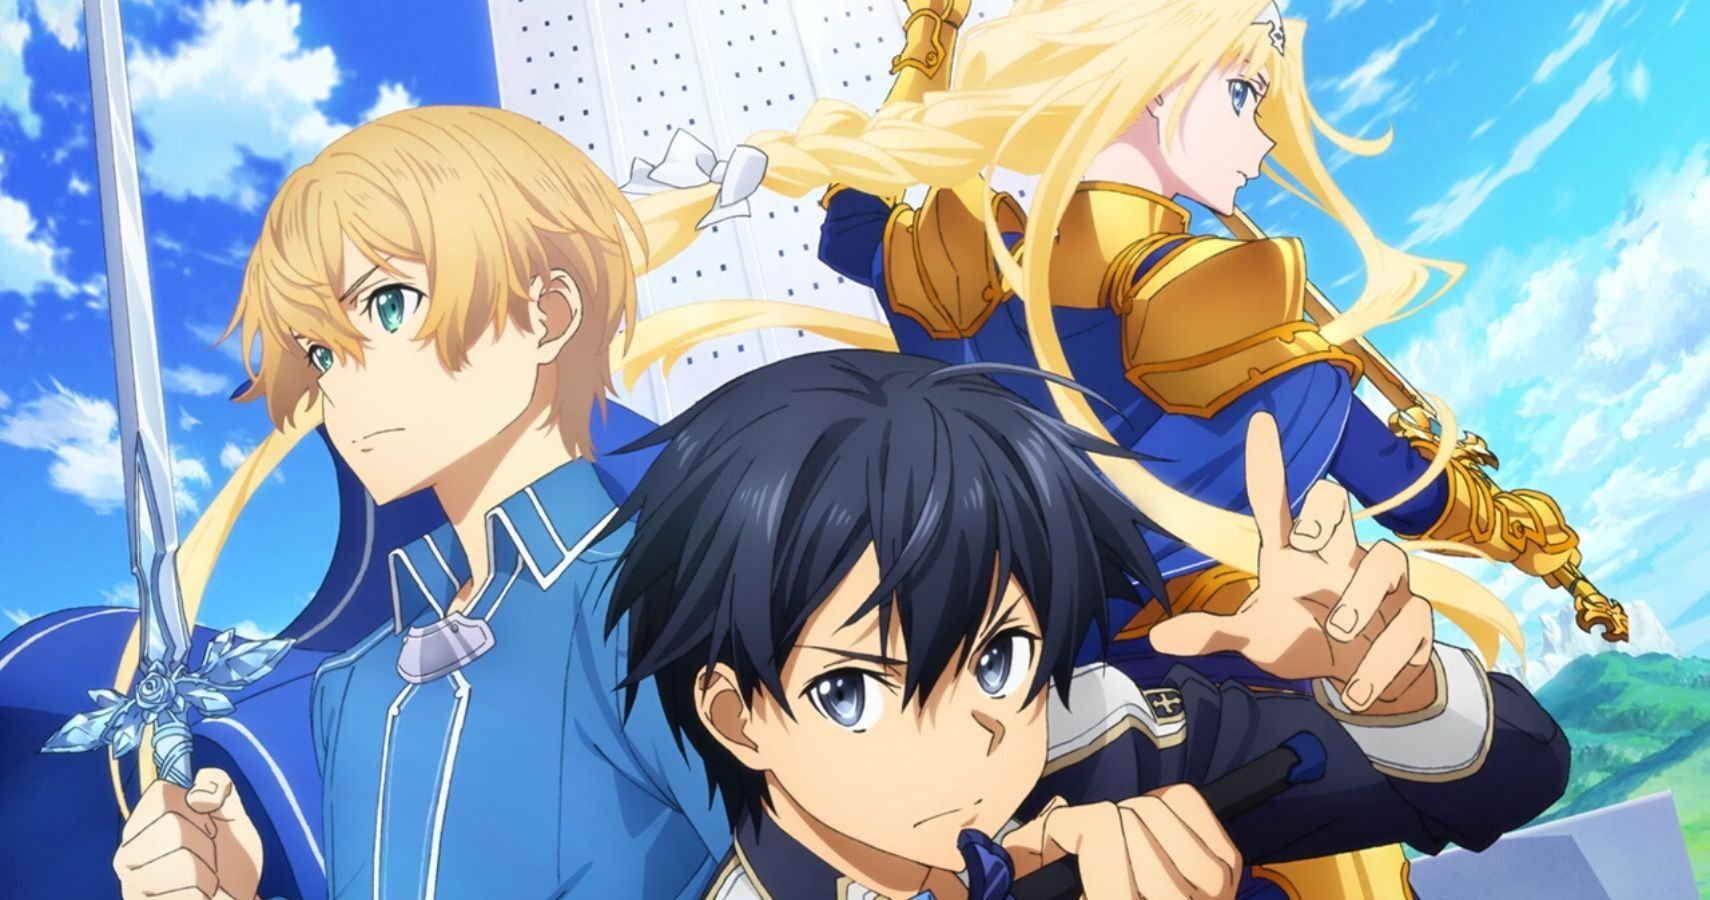 Sword Art Online 5 Reasons Alicization Is The Best Arc 5 It Is The Worst